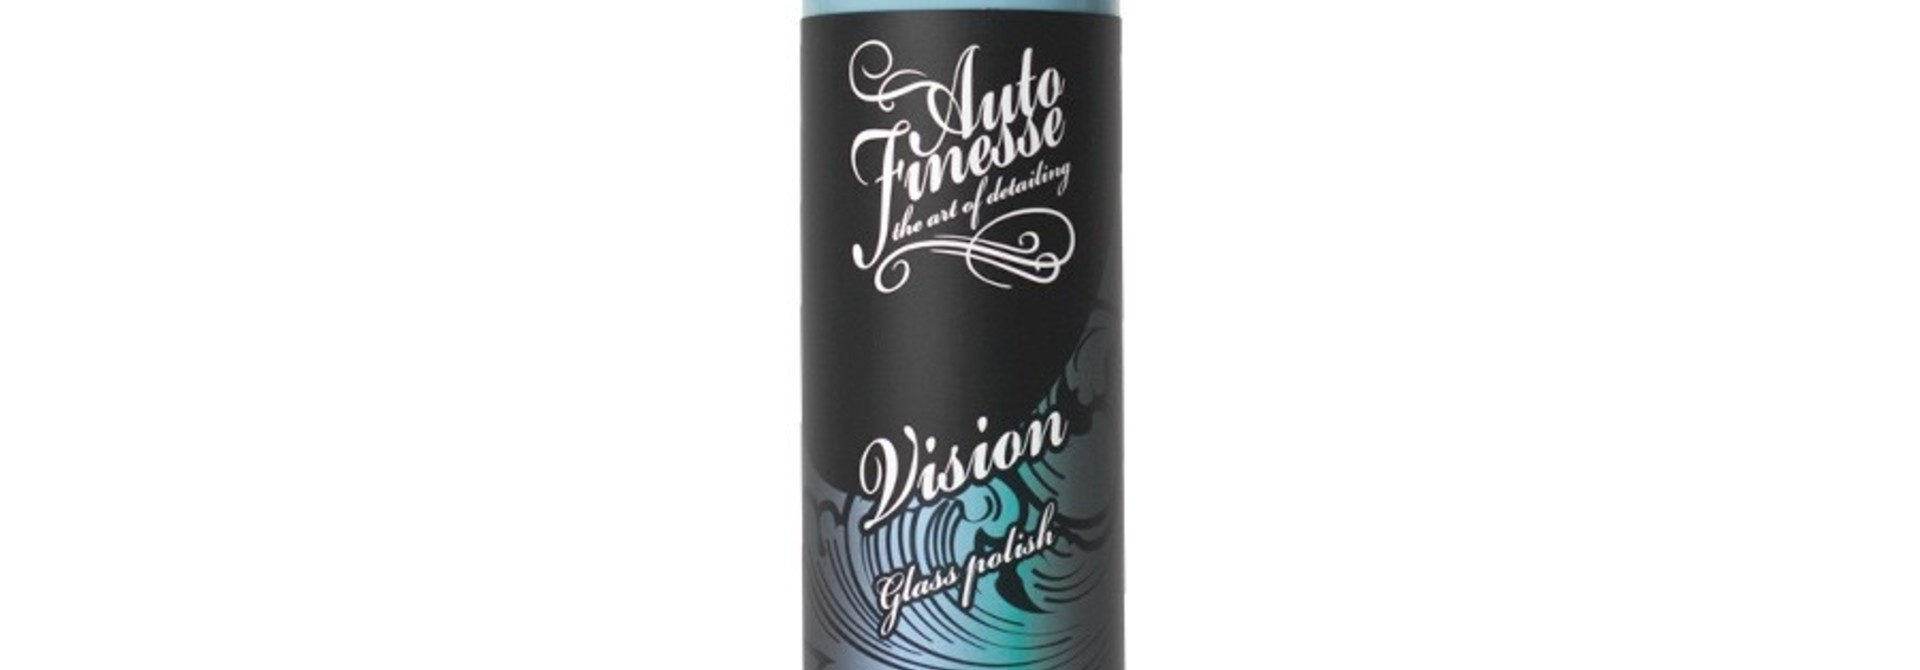 Vision Glass Polish